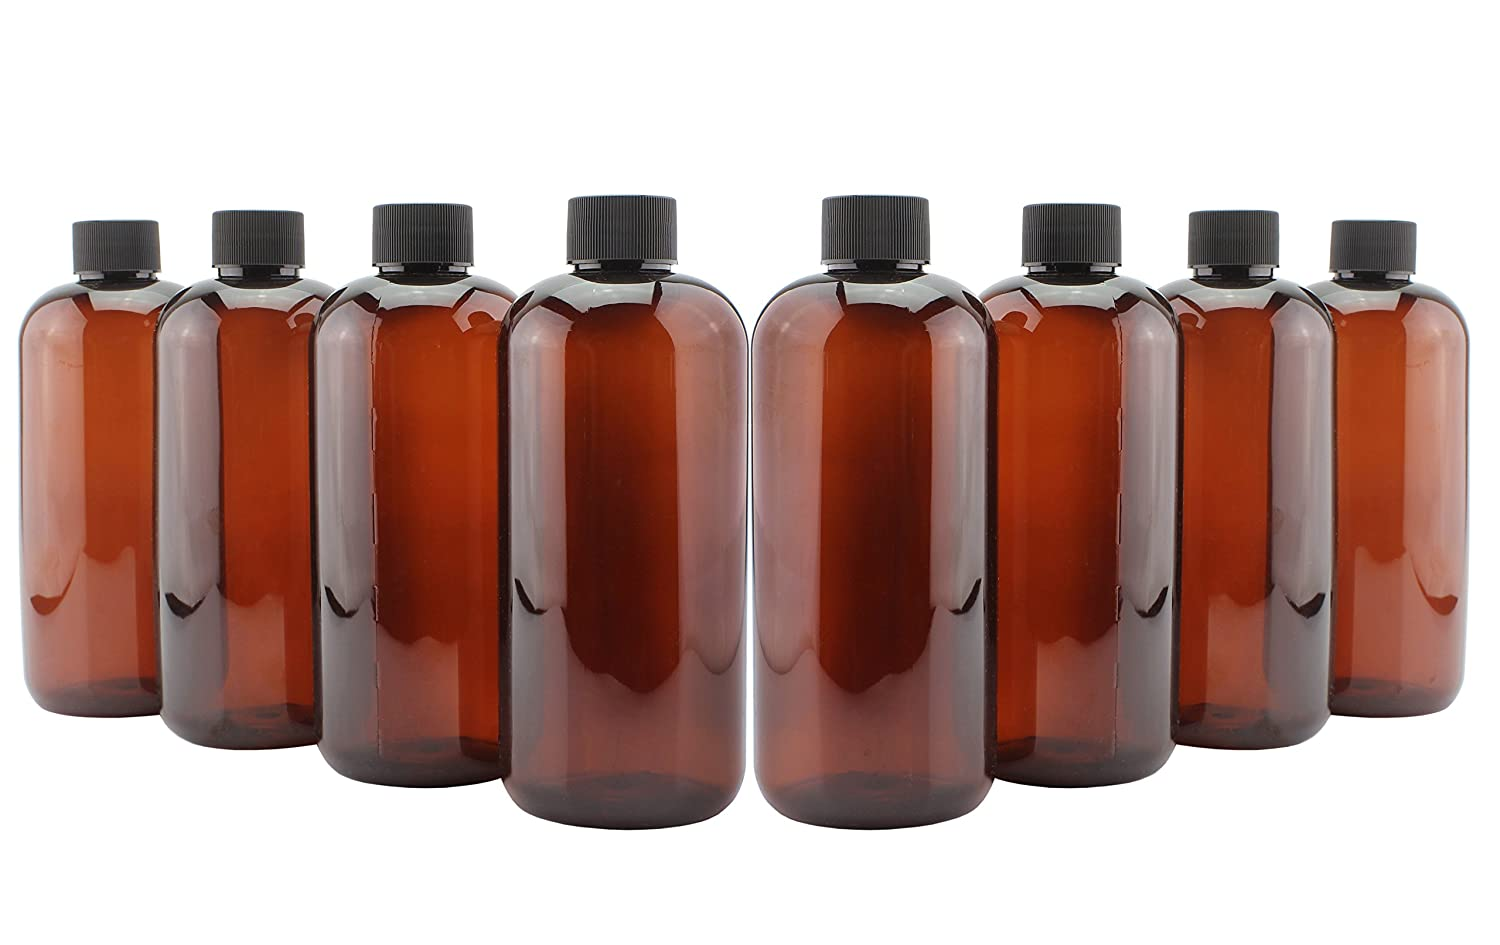 16-Ounce PLASTIC Amber Bottles (8-Pack); Plastic Bottles with Phenolic Caps for Kombucha, Cold Brew, Iced Tea, Other Beverages